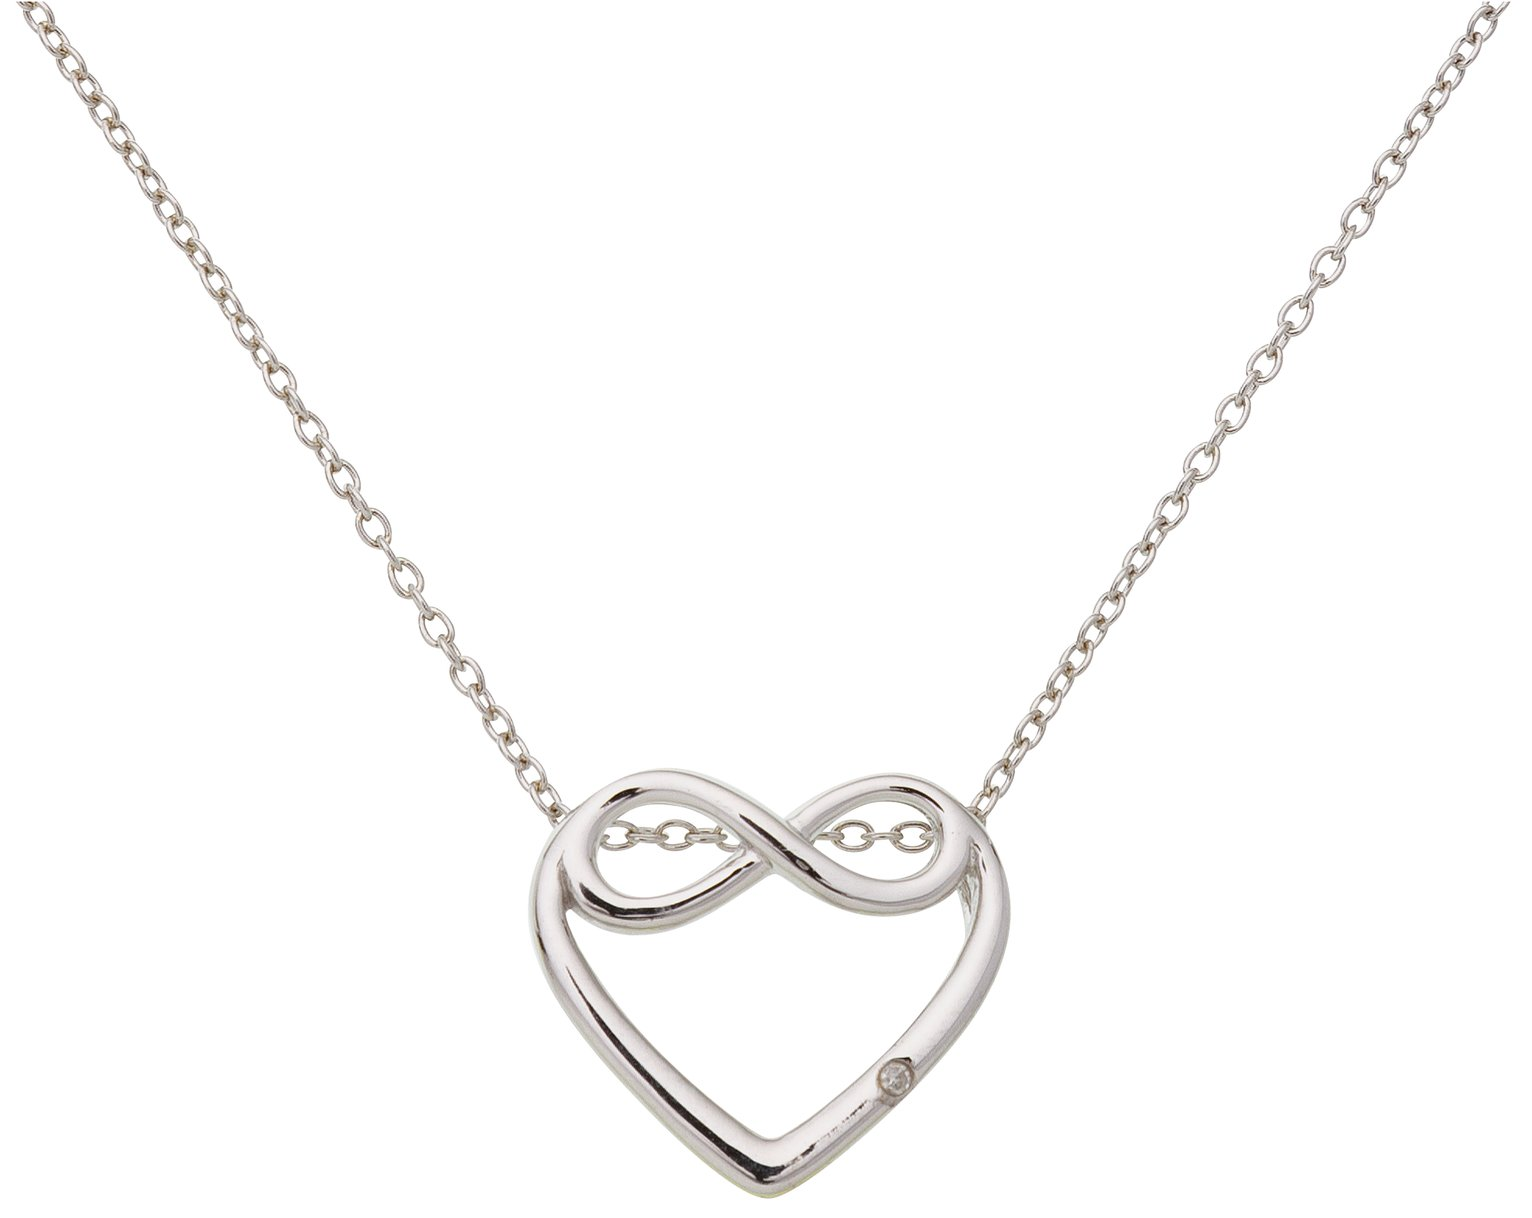 Accents by Hot Diamonds Silver Heart Pendant 18 Inch Chain